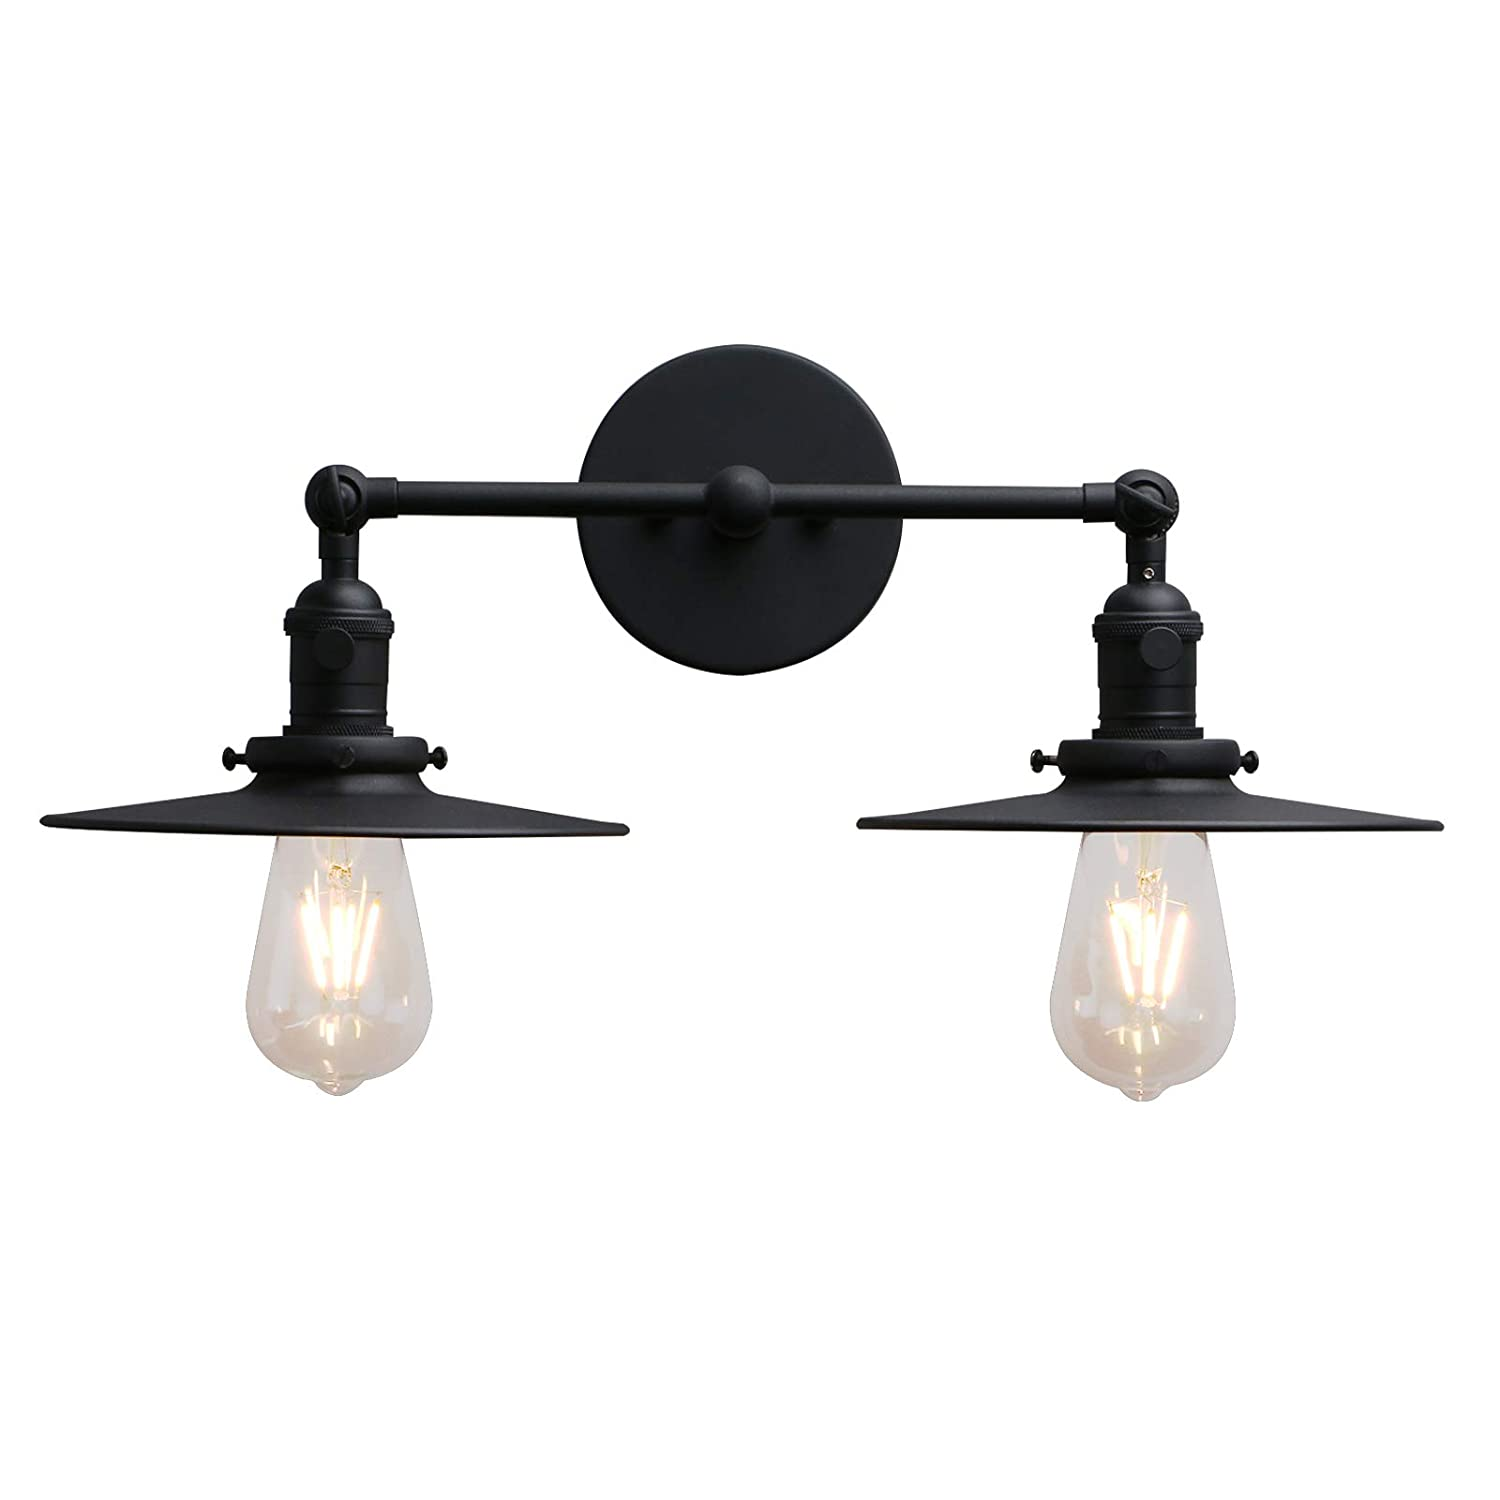 Phansthy 2 lights sconce with switch matte black vanity light with dual 7 87 flat crafted light shade matte black